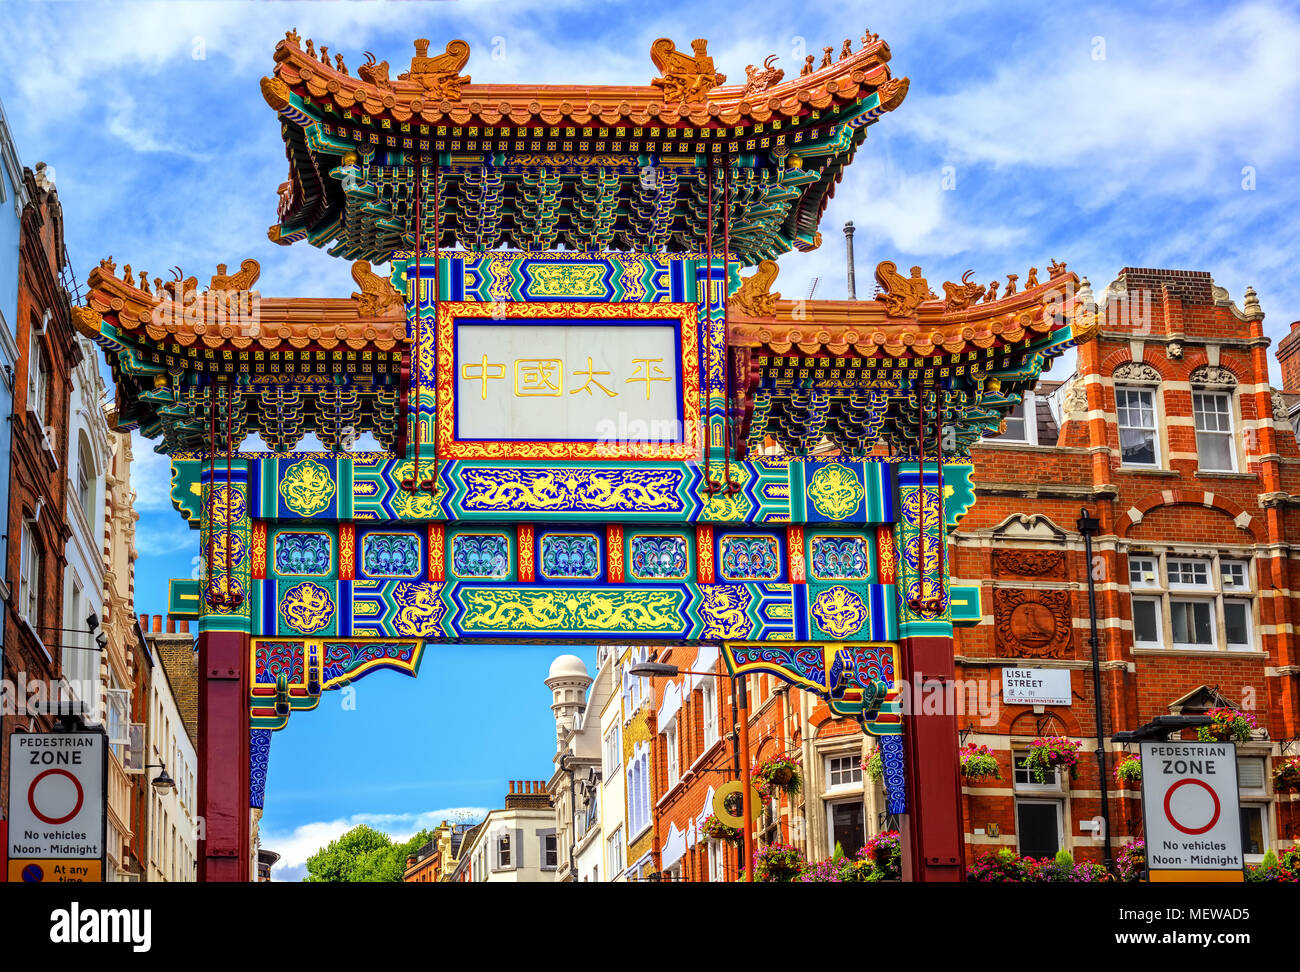 London Chinatown Entrance Gate In Traditional Chinese Design England United Kingdom China Peace Security Zhong Gui Tai Ping Is Written On The Stock Photo Alamy